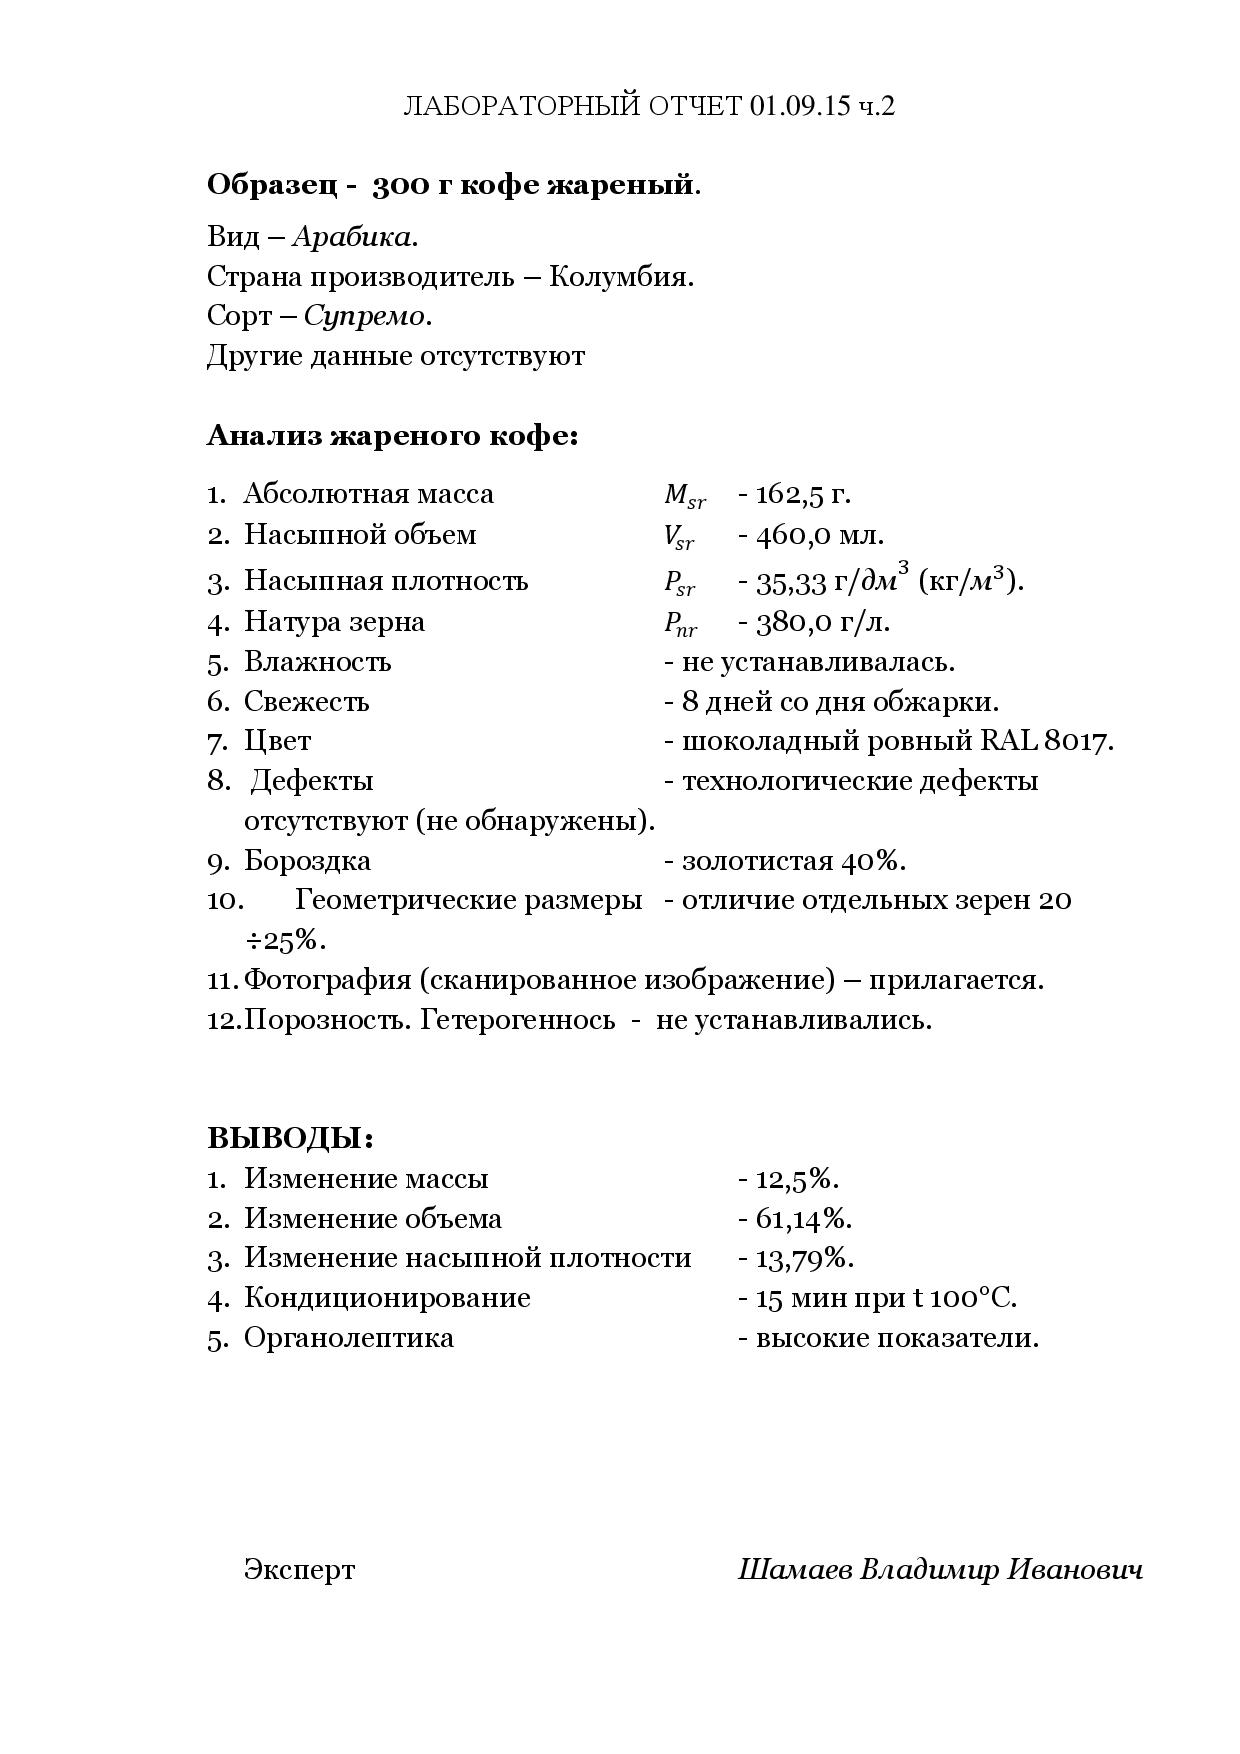 Document-page-002__1_.jpg